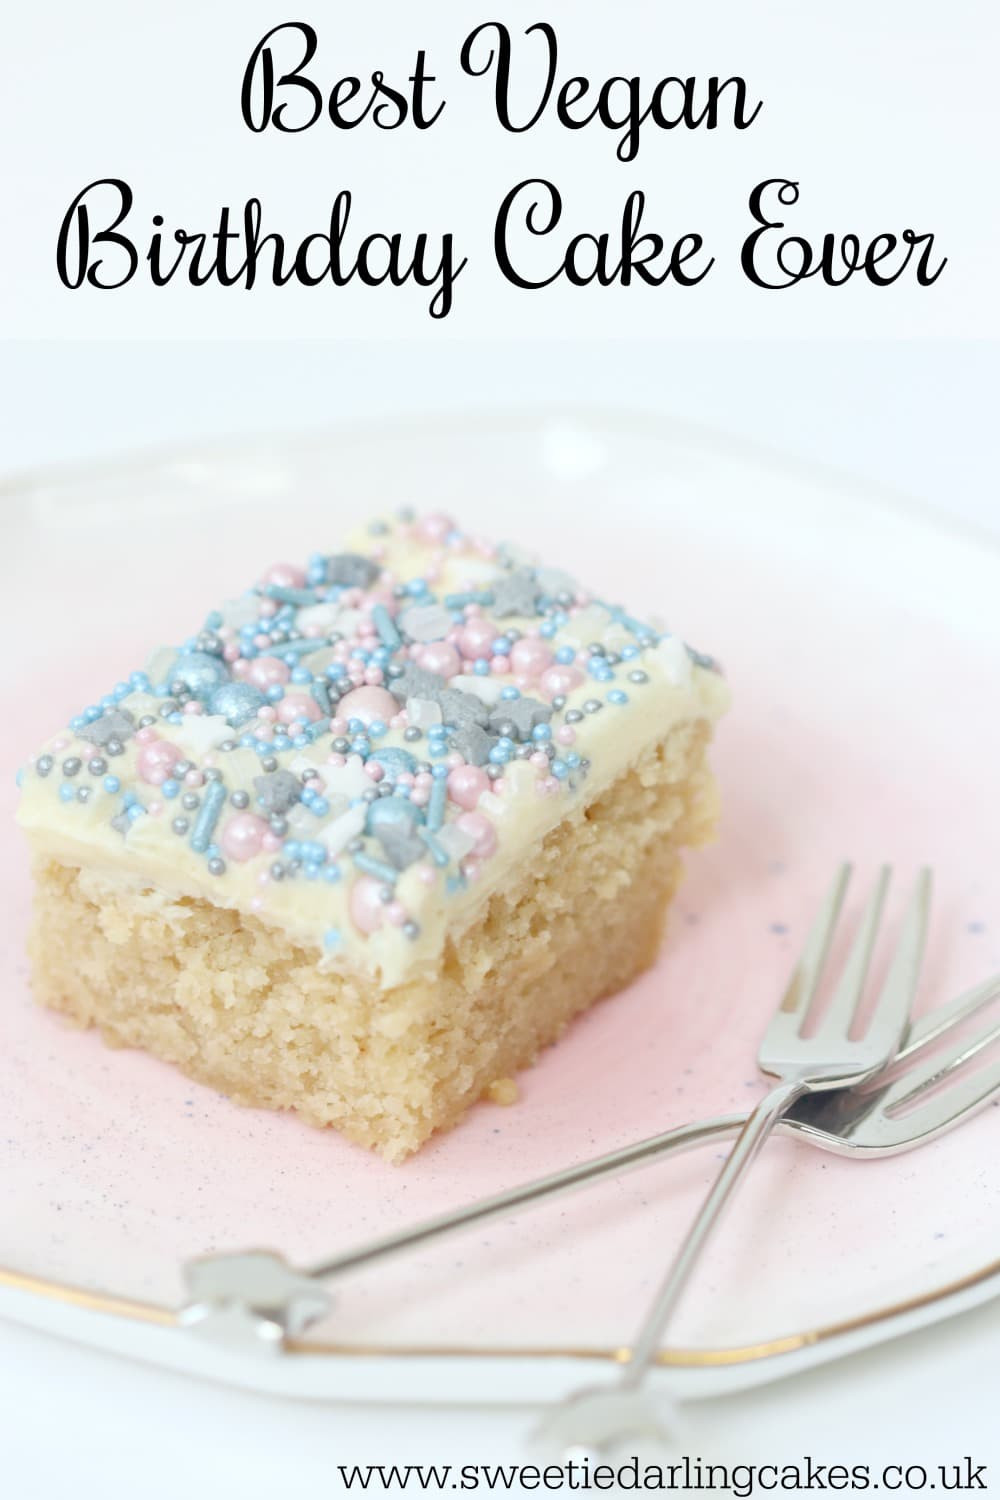 Best ideas about Vegetarian Birthday Cake Recipes . Save or Pin Best Vegan Birthday Cake Ever Sweetie Darling Now.